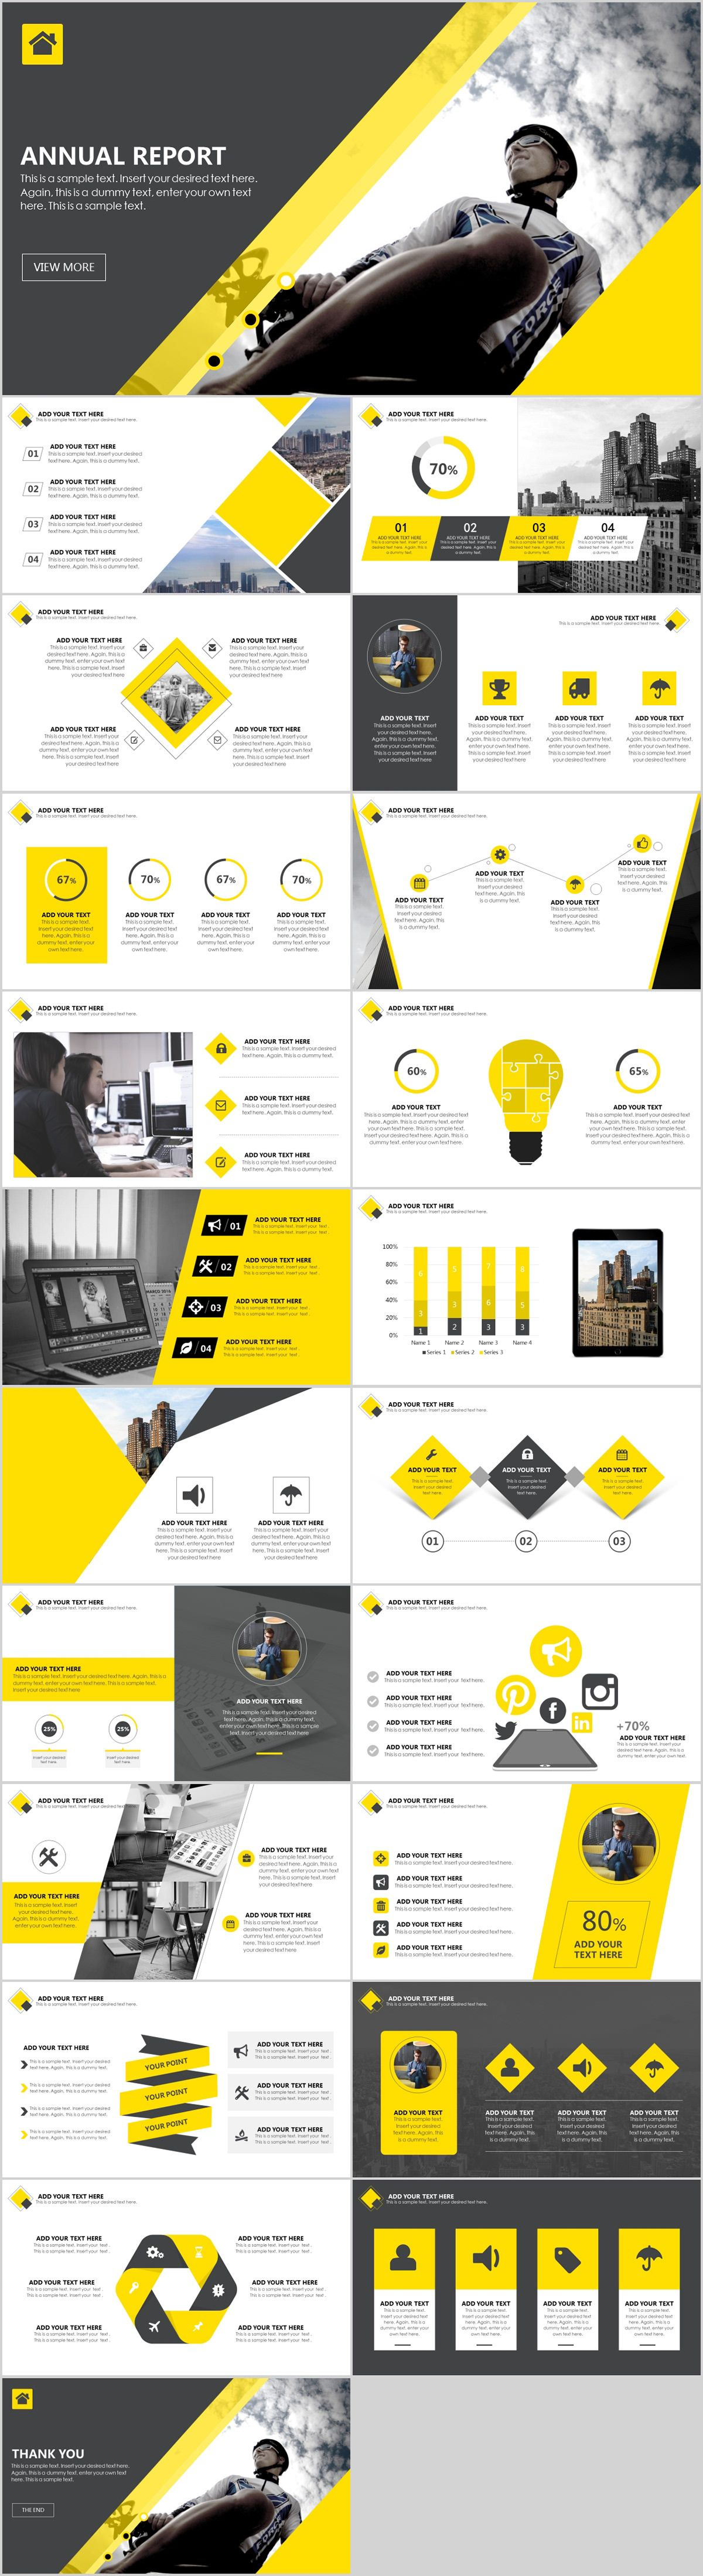 Best yellow annual report powerpoint template on behance powerpoint best yellow annual report powerpoint template on behance powerpoint templates presentation animation toneelgroepblik Choice Image